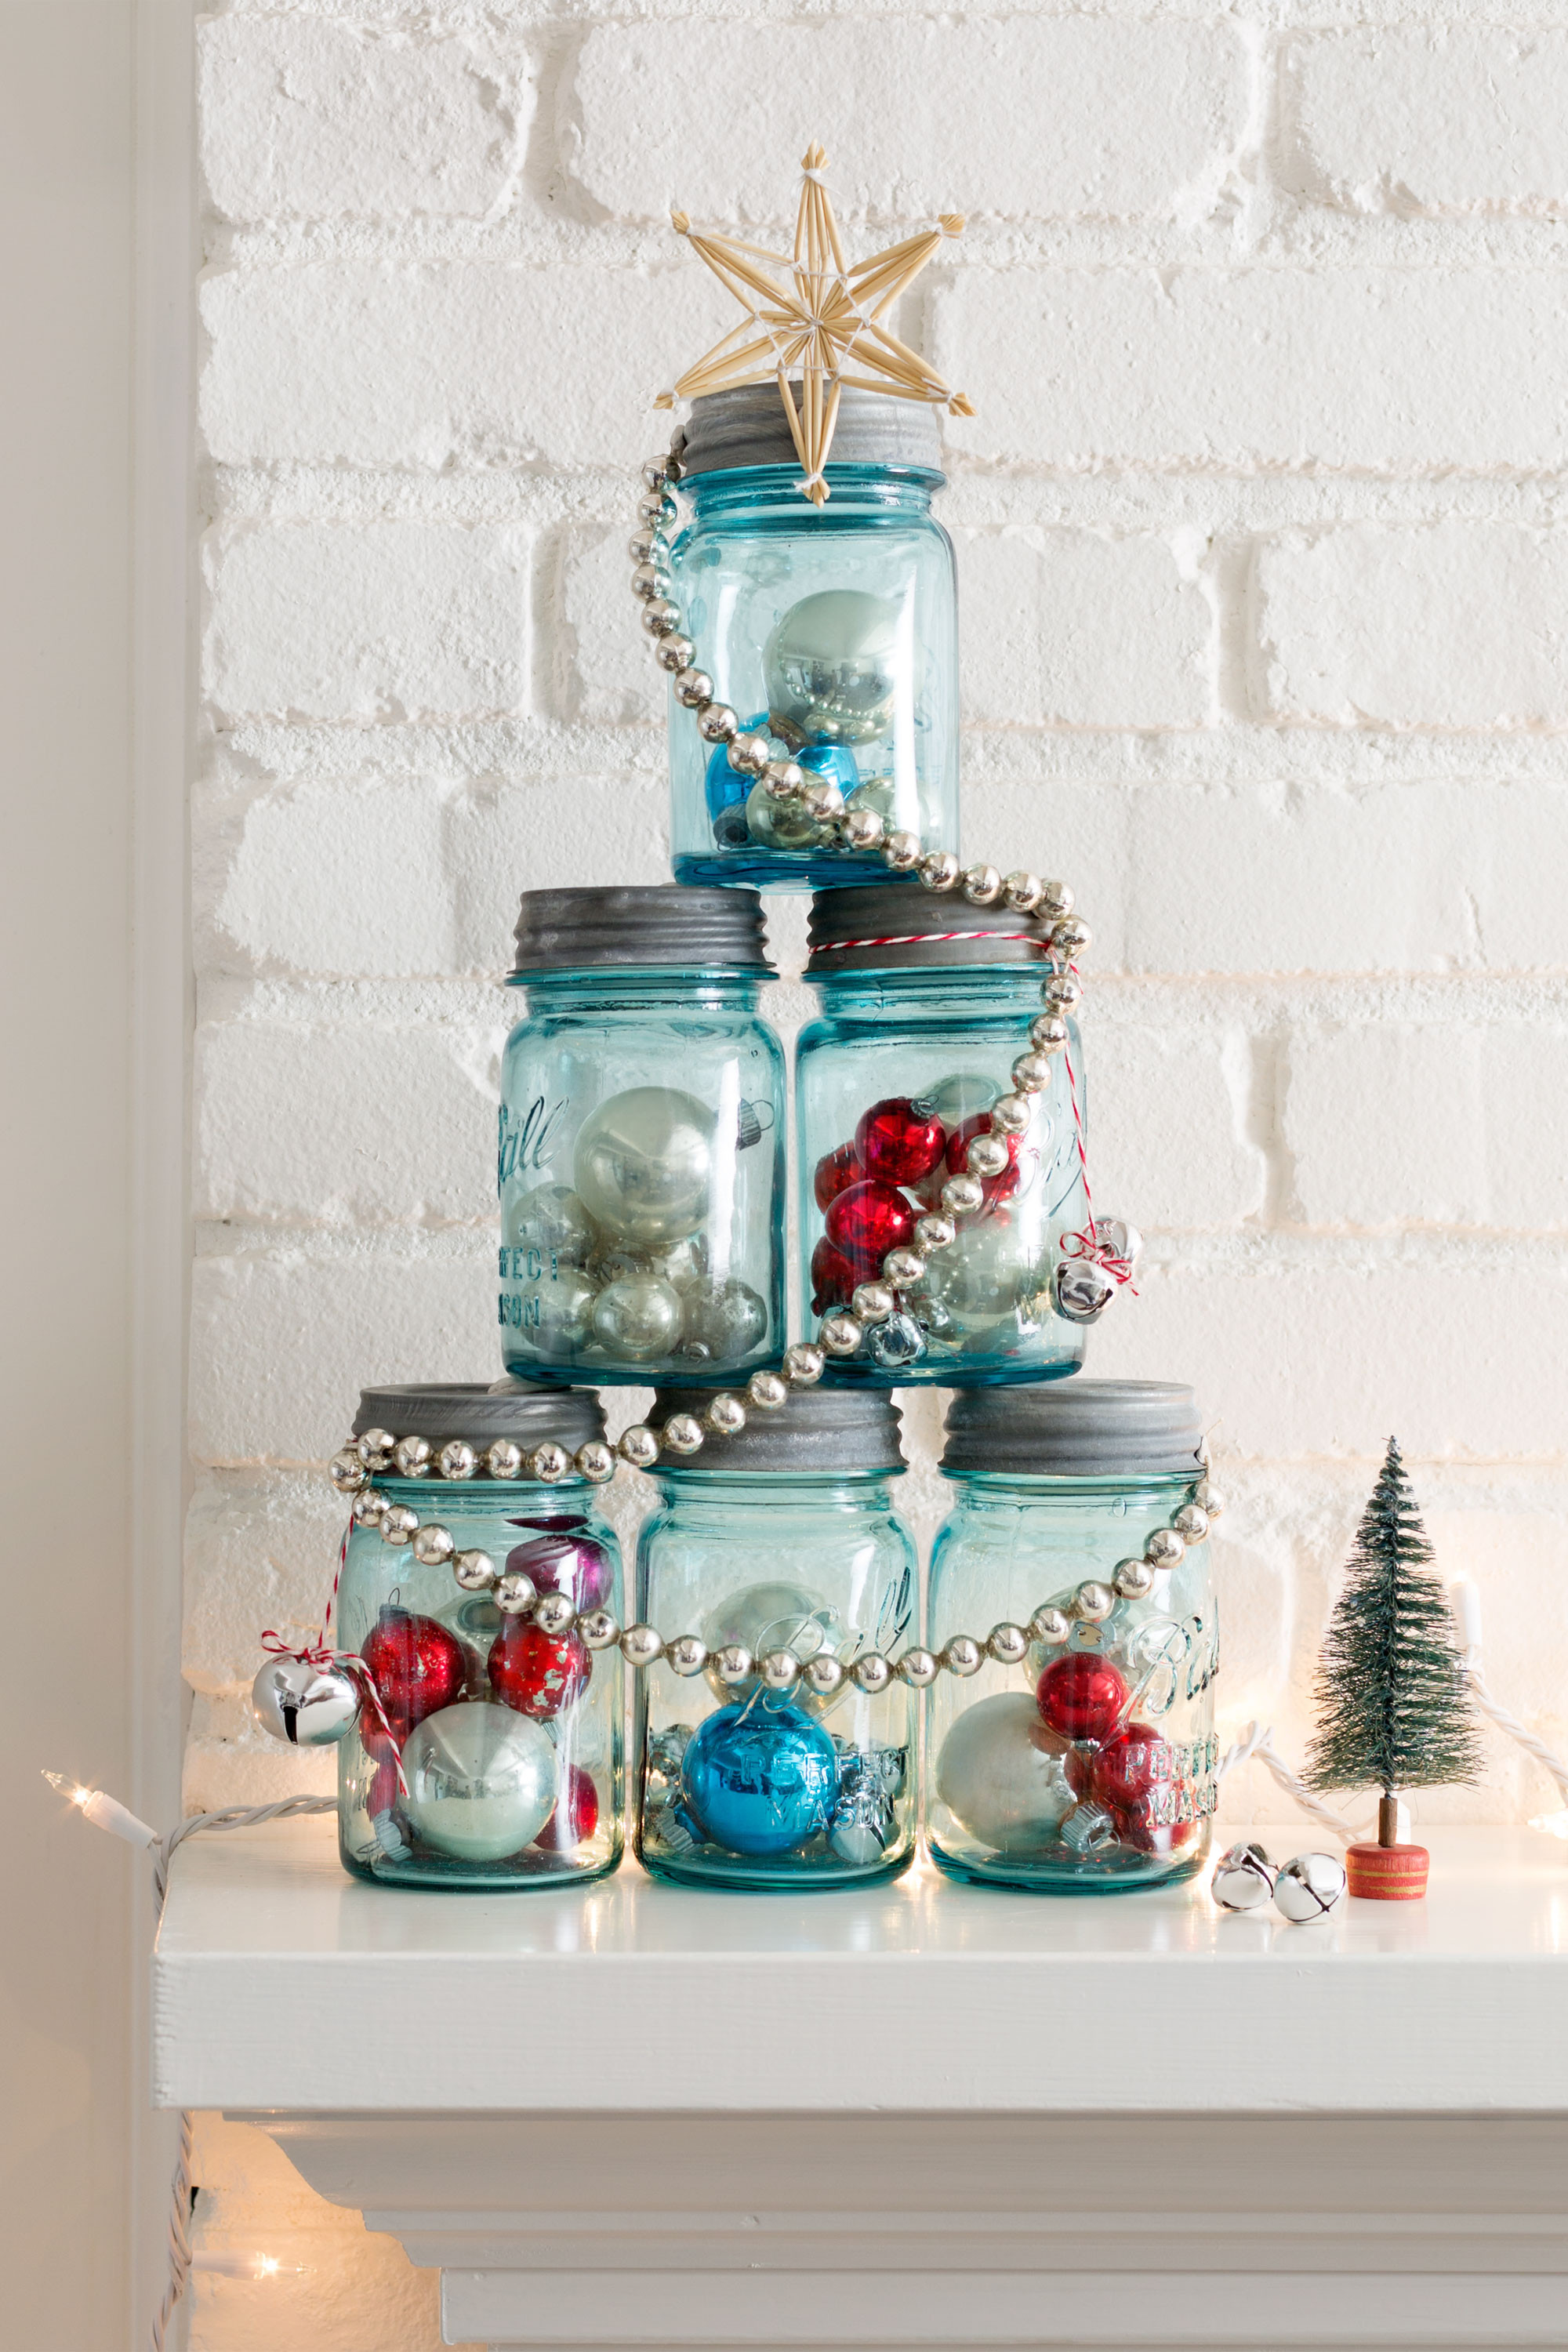 Best ideas about Christmas DIY Ideas . Save or Pin 37 DIY Homemade Christmas Decorations Christmas Decor Now.